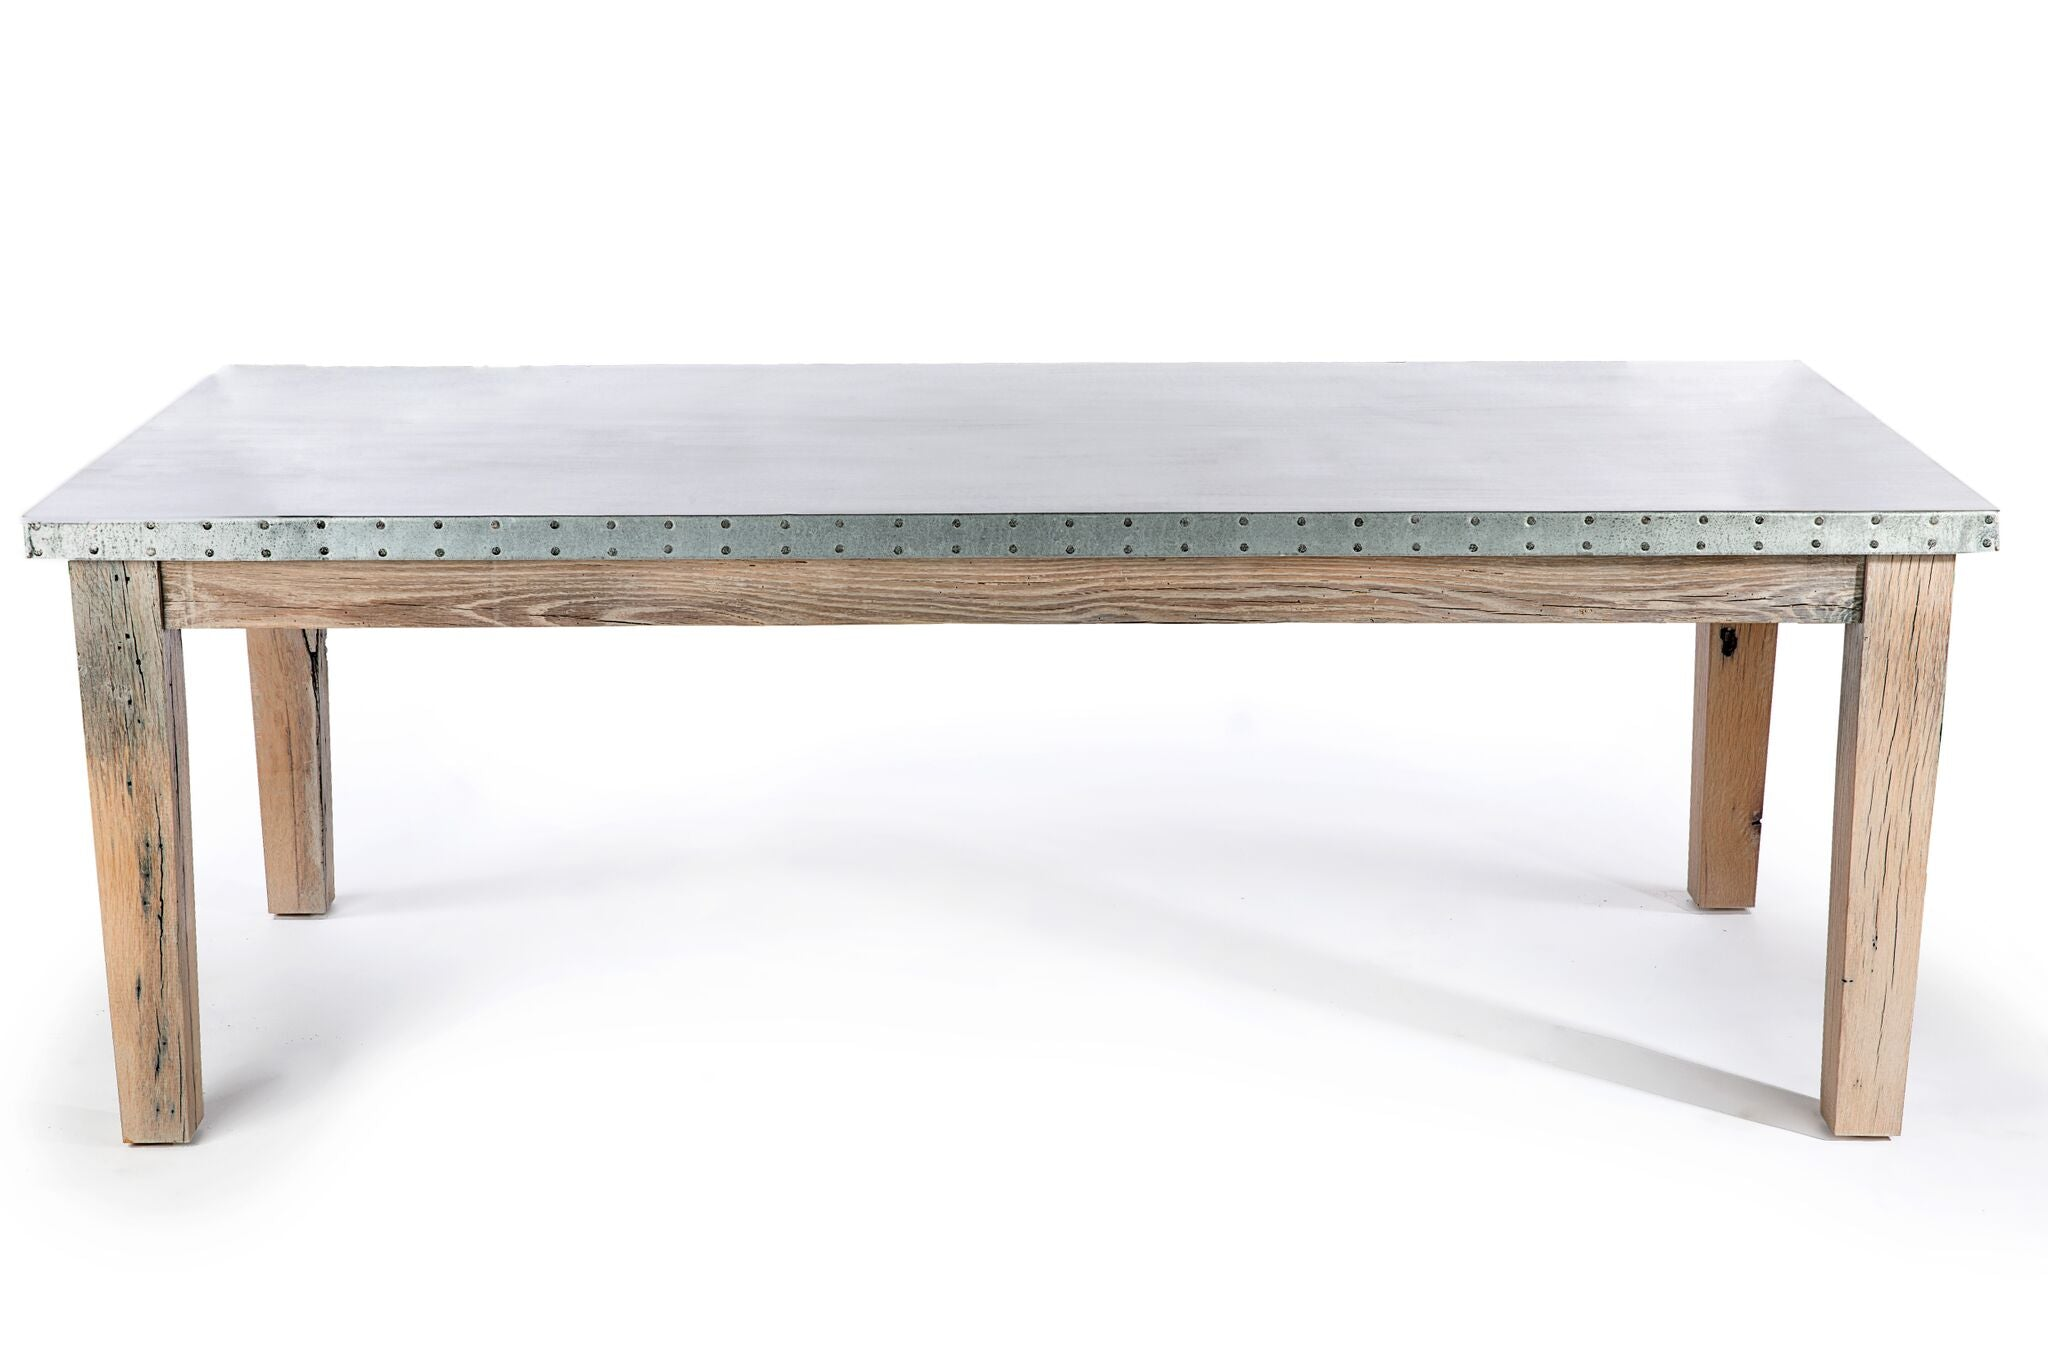 "Zinc Rectangular Table | Cambridge Table | CLASSIC | Espresso Ash | 96""L 39""W 30""H 